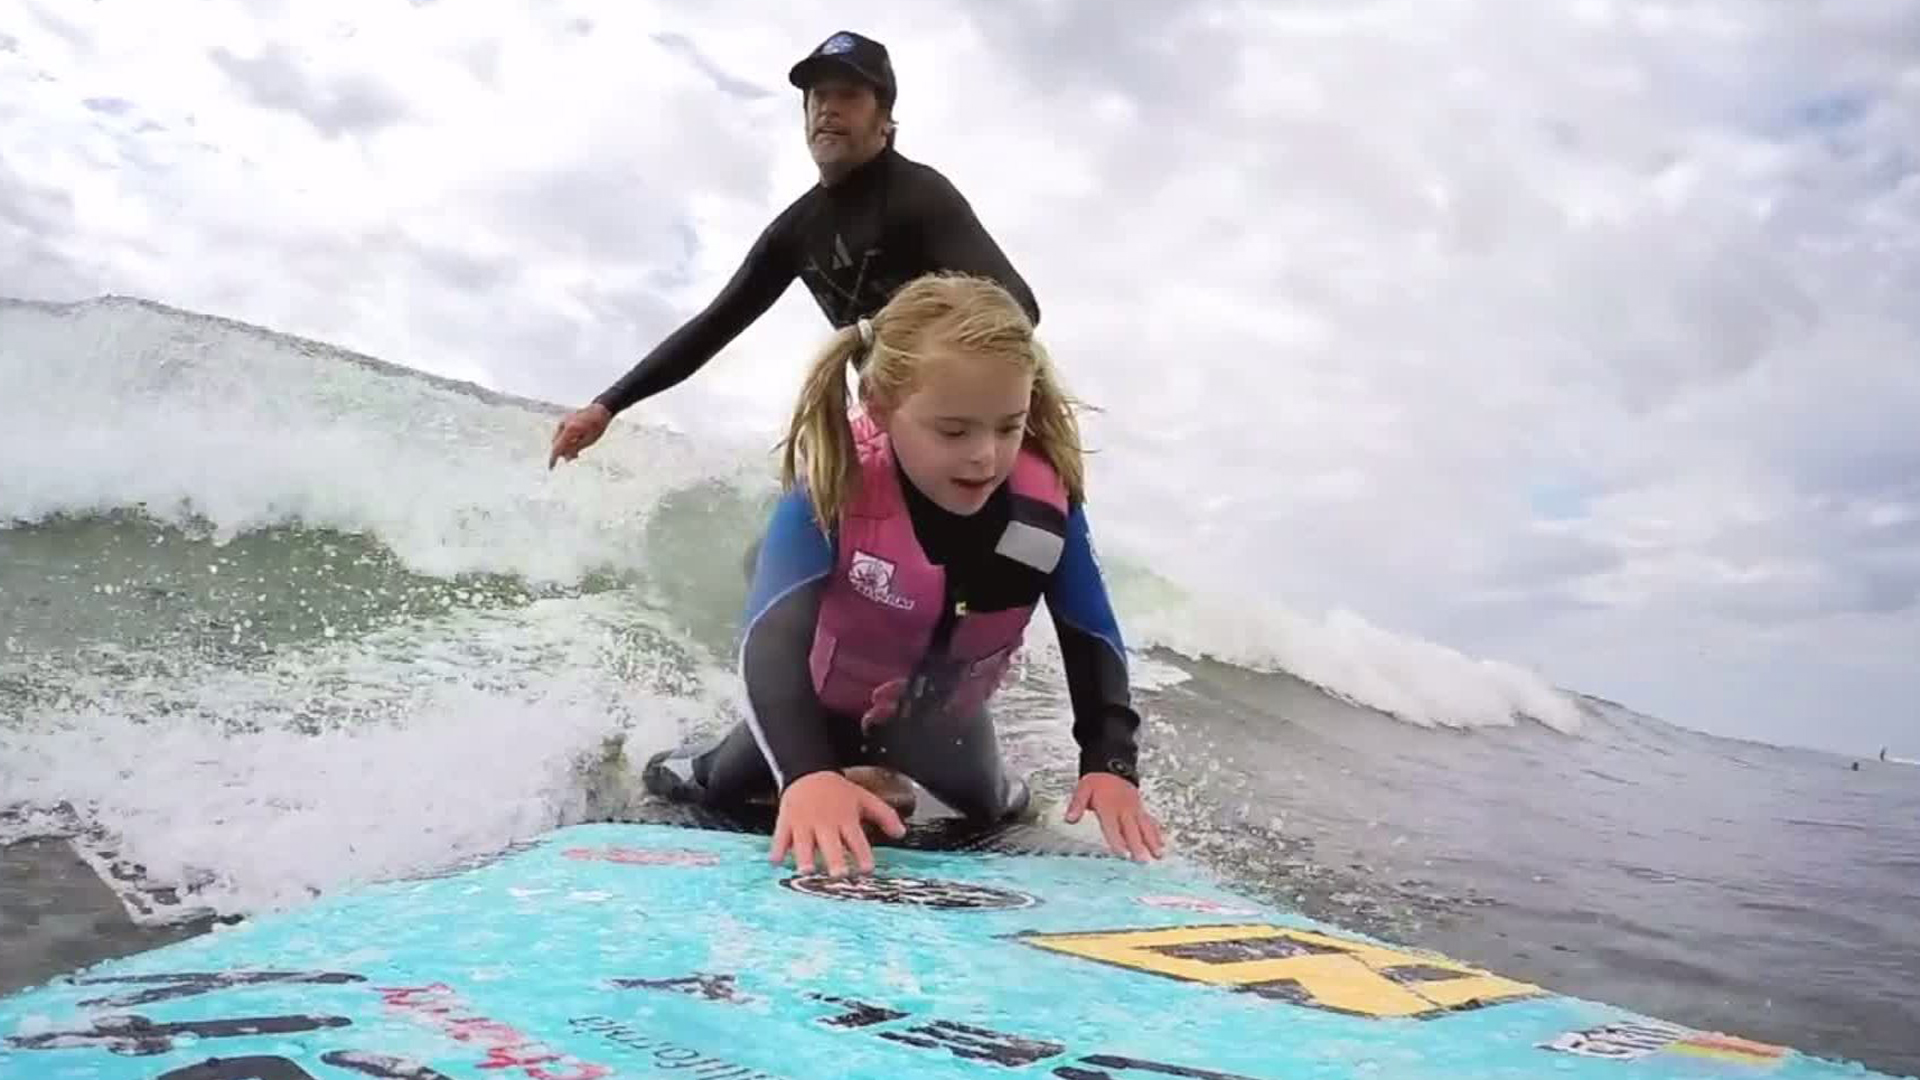 """A surfer catches a wave while a young girl rides the tip of his board during a """"A Walk on Water"""" event in Malibu on November 11, 2017. (Credit: KTLA)"""